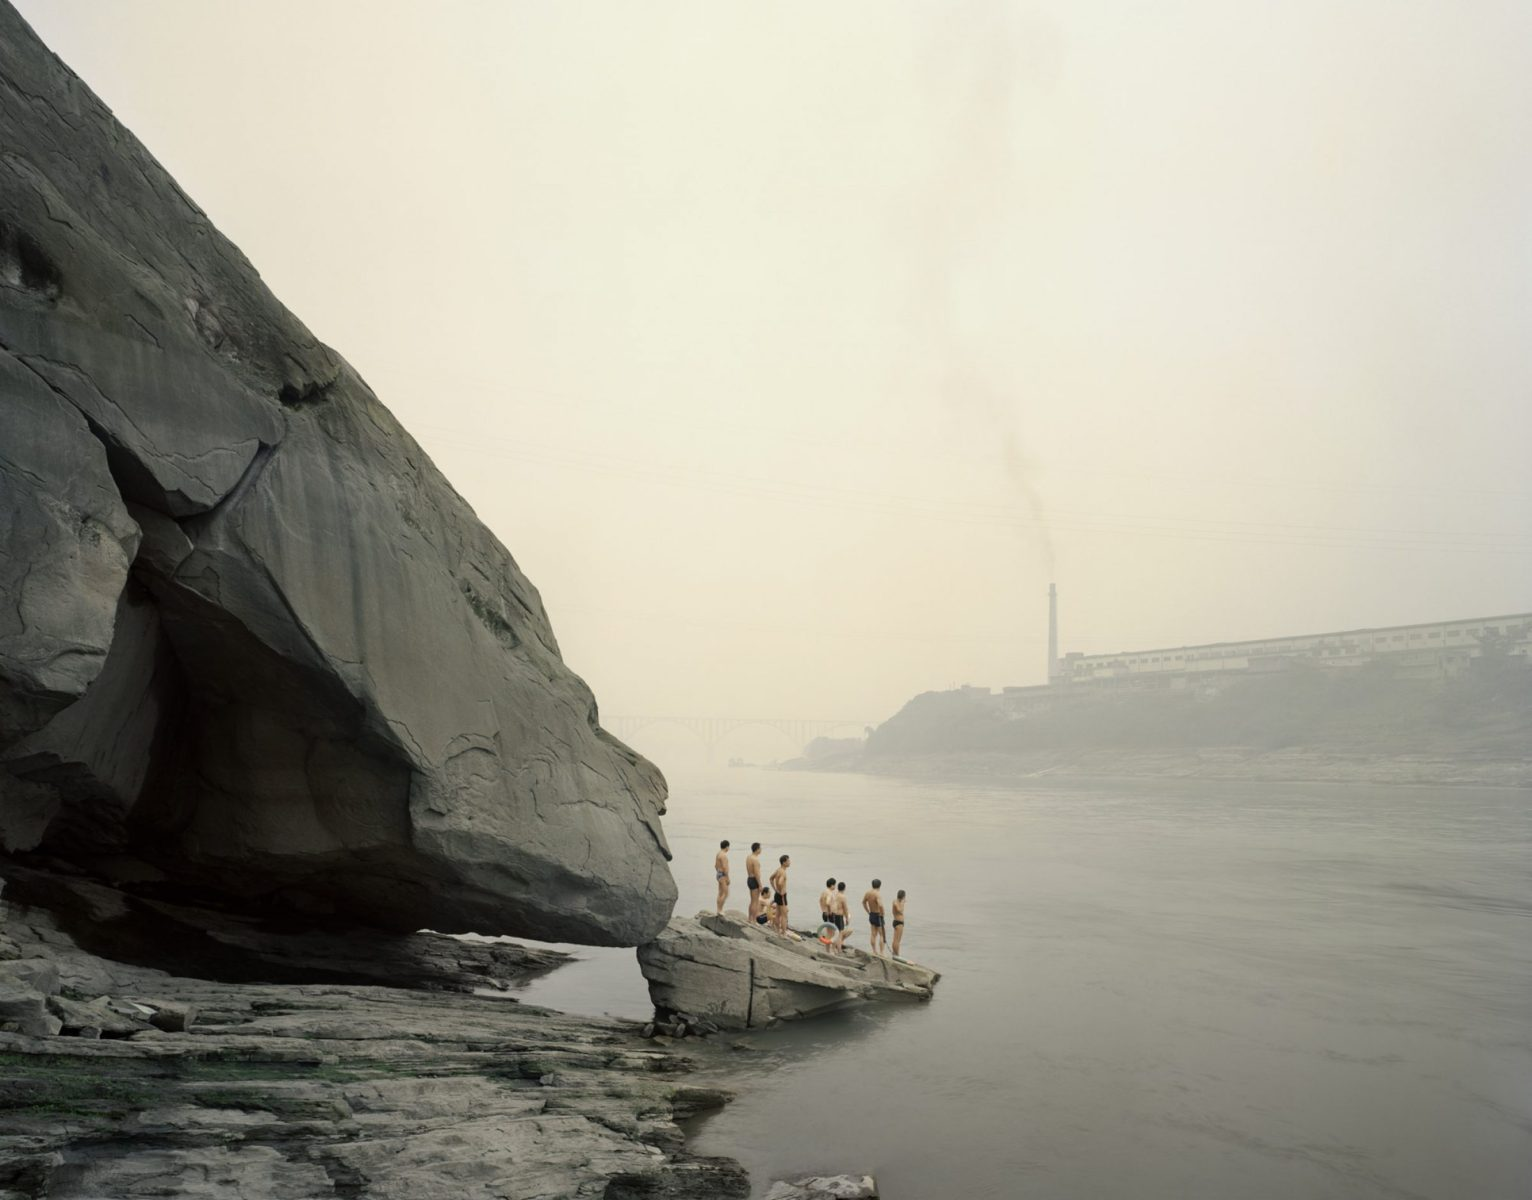 Yibin I (Bathers), Sichuan Province, 2007 - From Yangtze, The Long River photograph by Nadav Kander